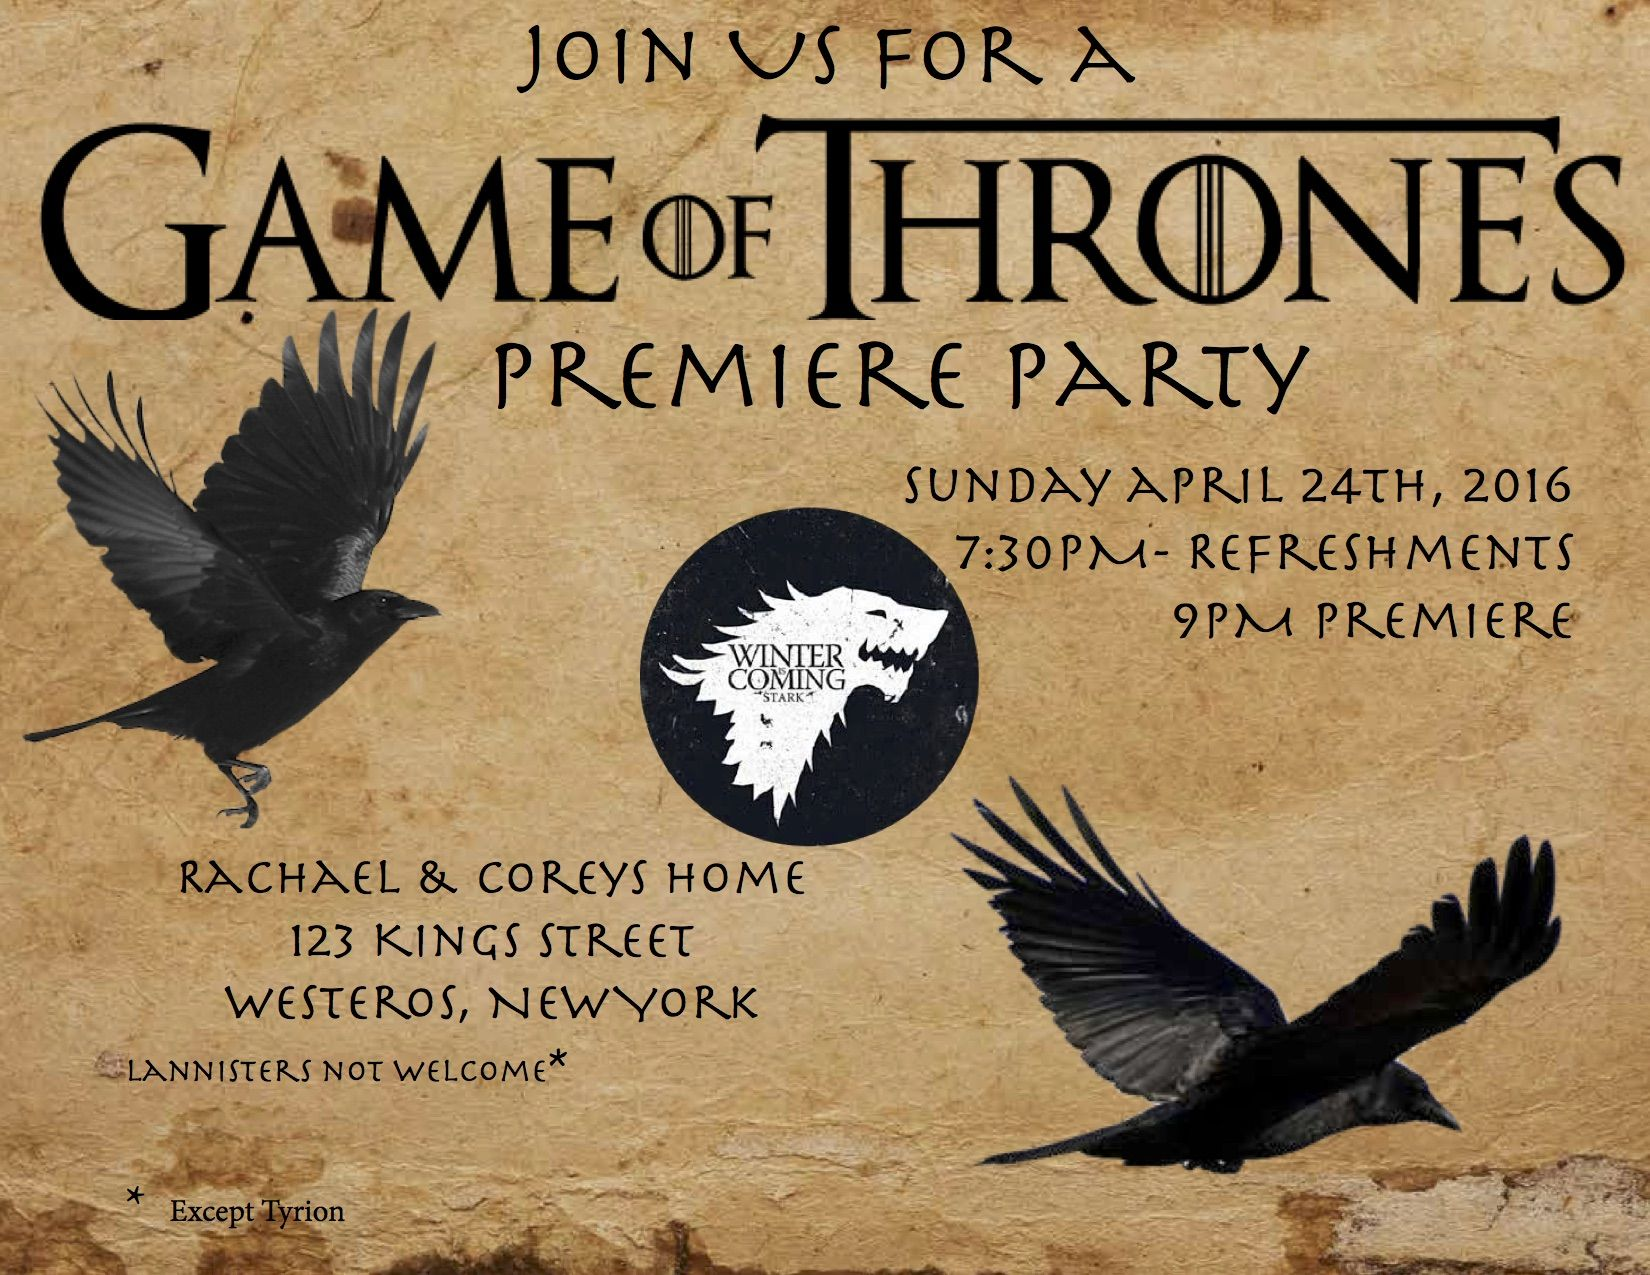 Game of Thrones Premiere Party Invitation Inspiration. I make a